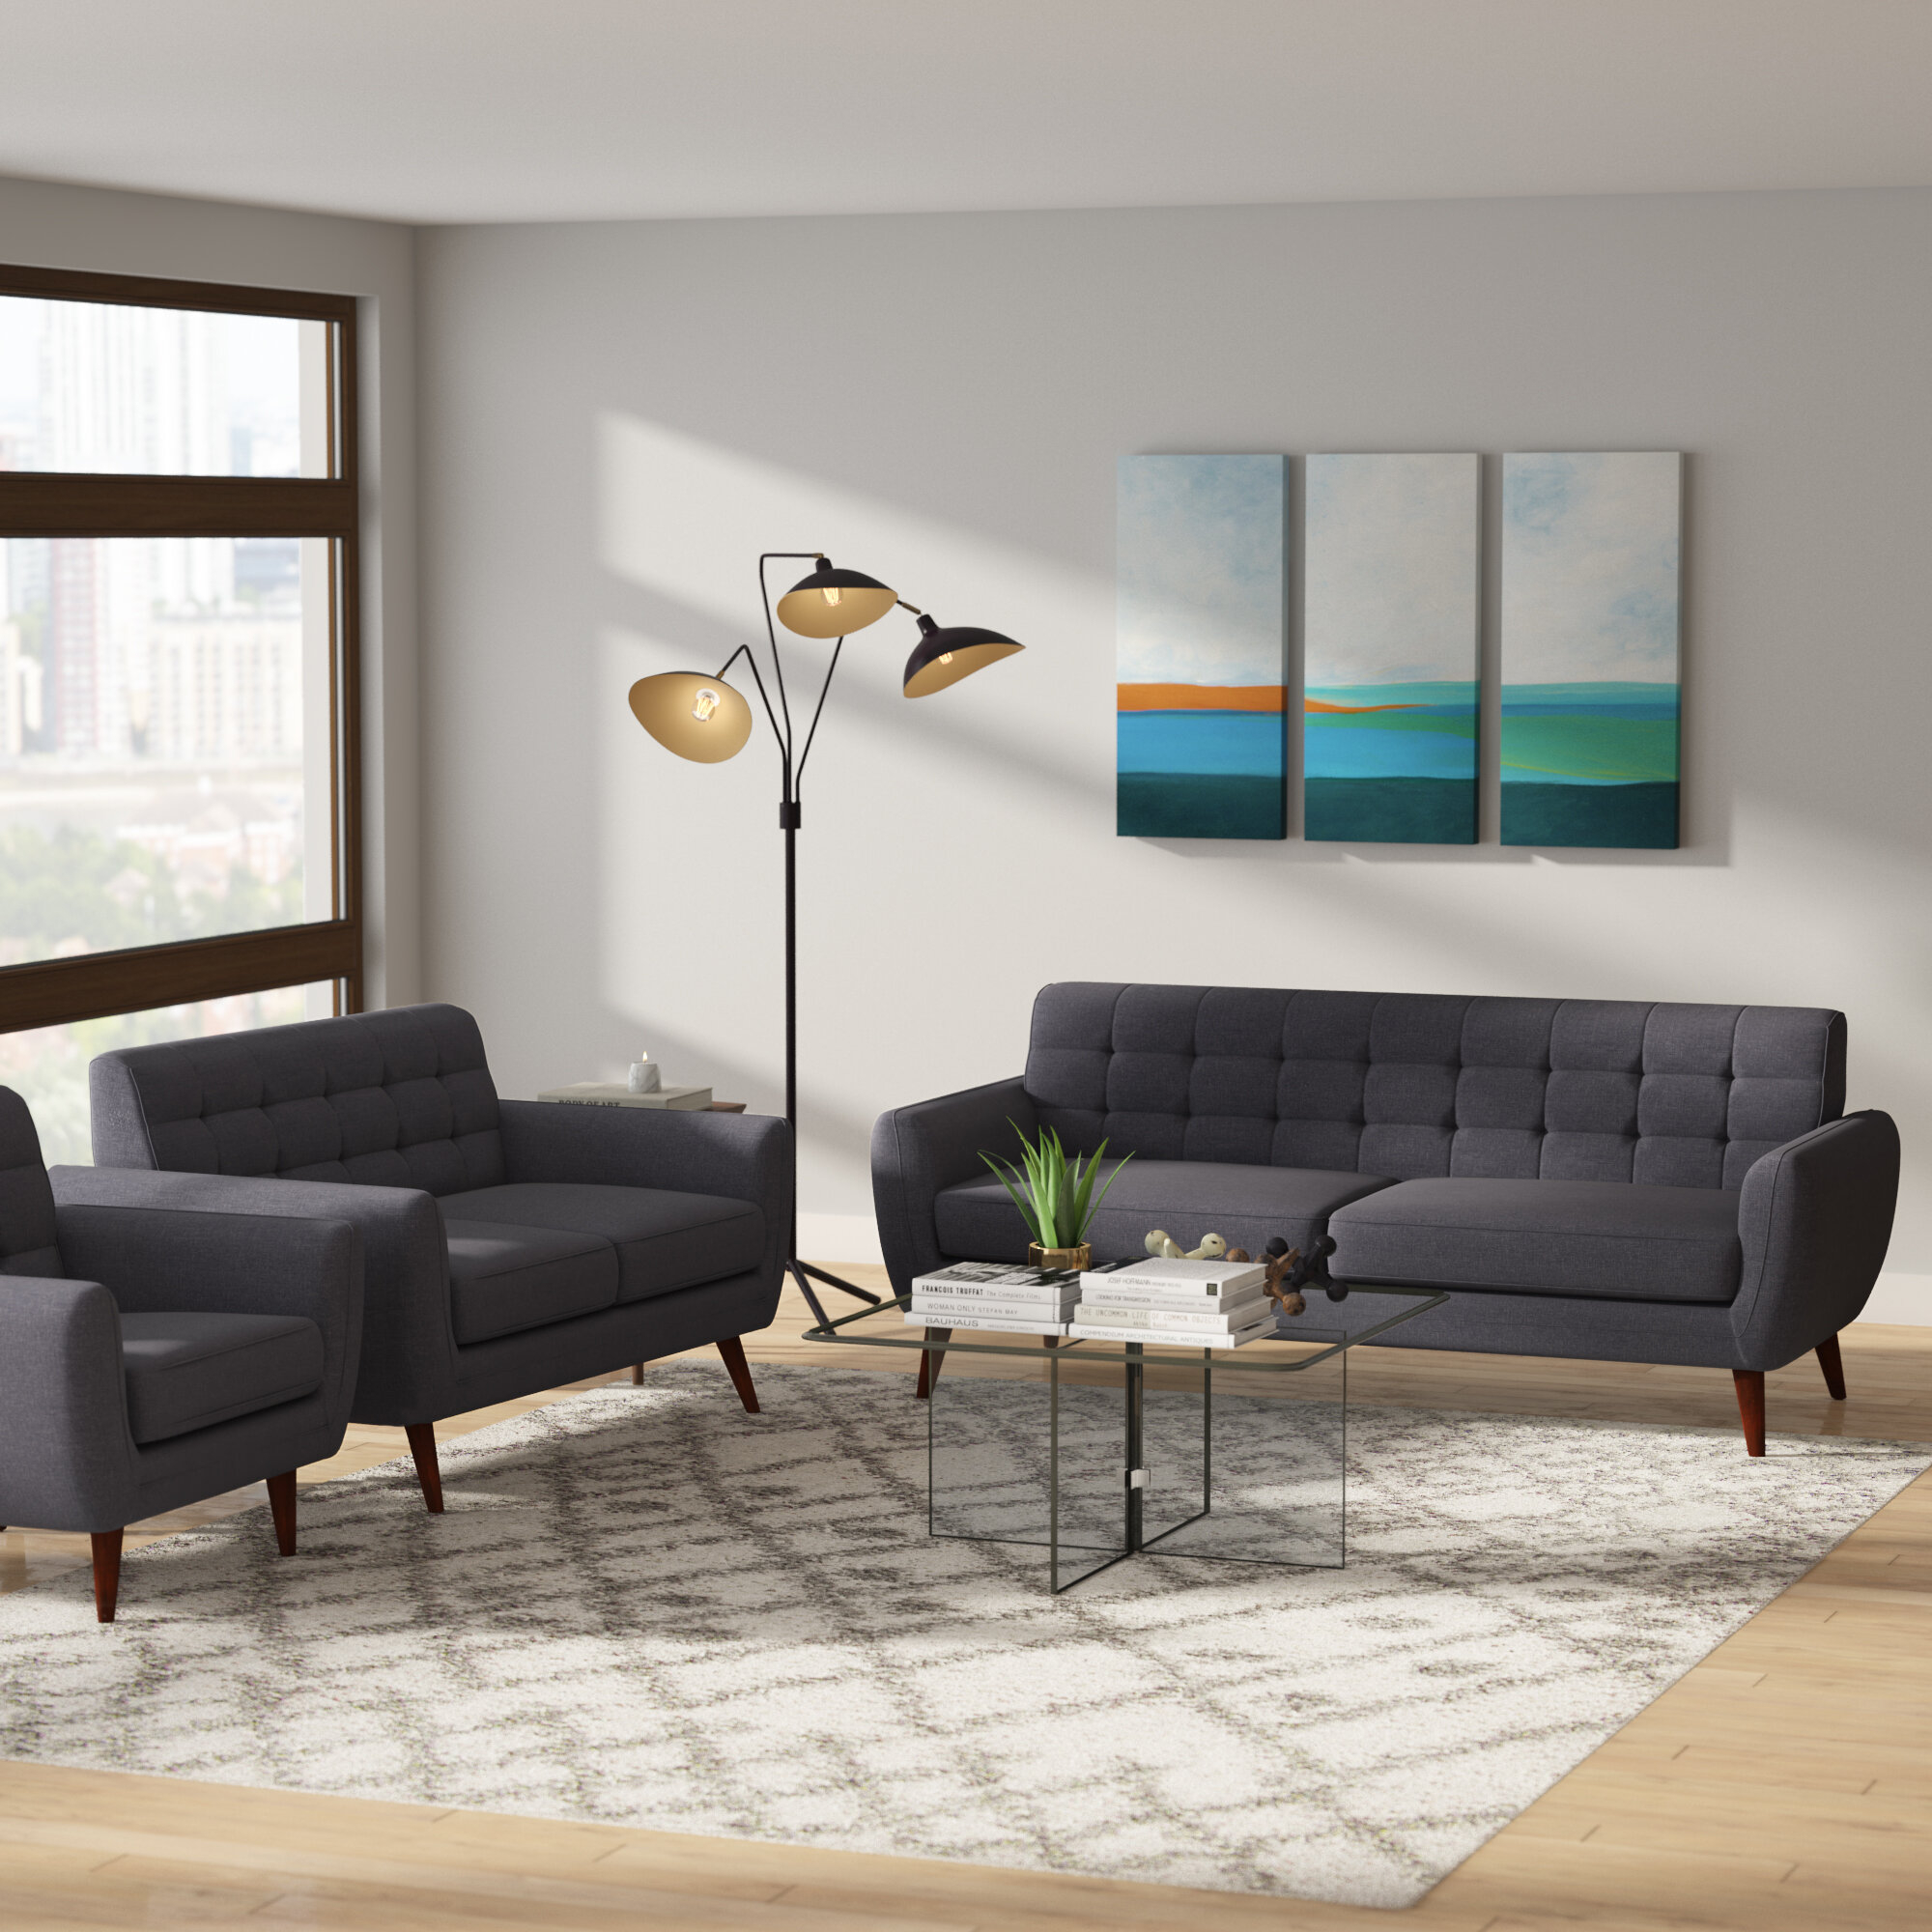 Ivy Bronx Philip 3 Piece Living Room Set Wayfair with regard to Comfortable Living Room Sets